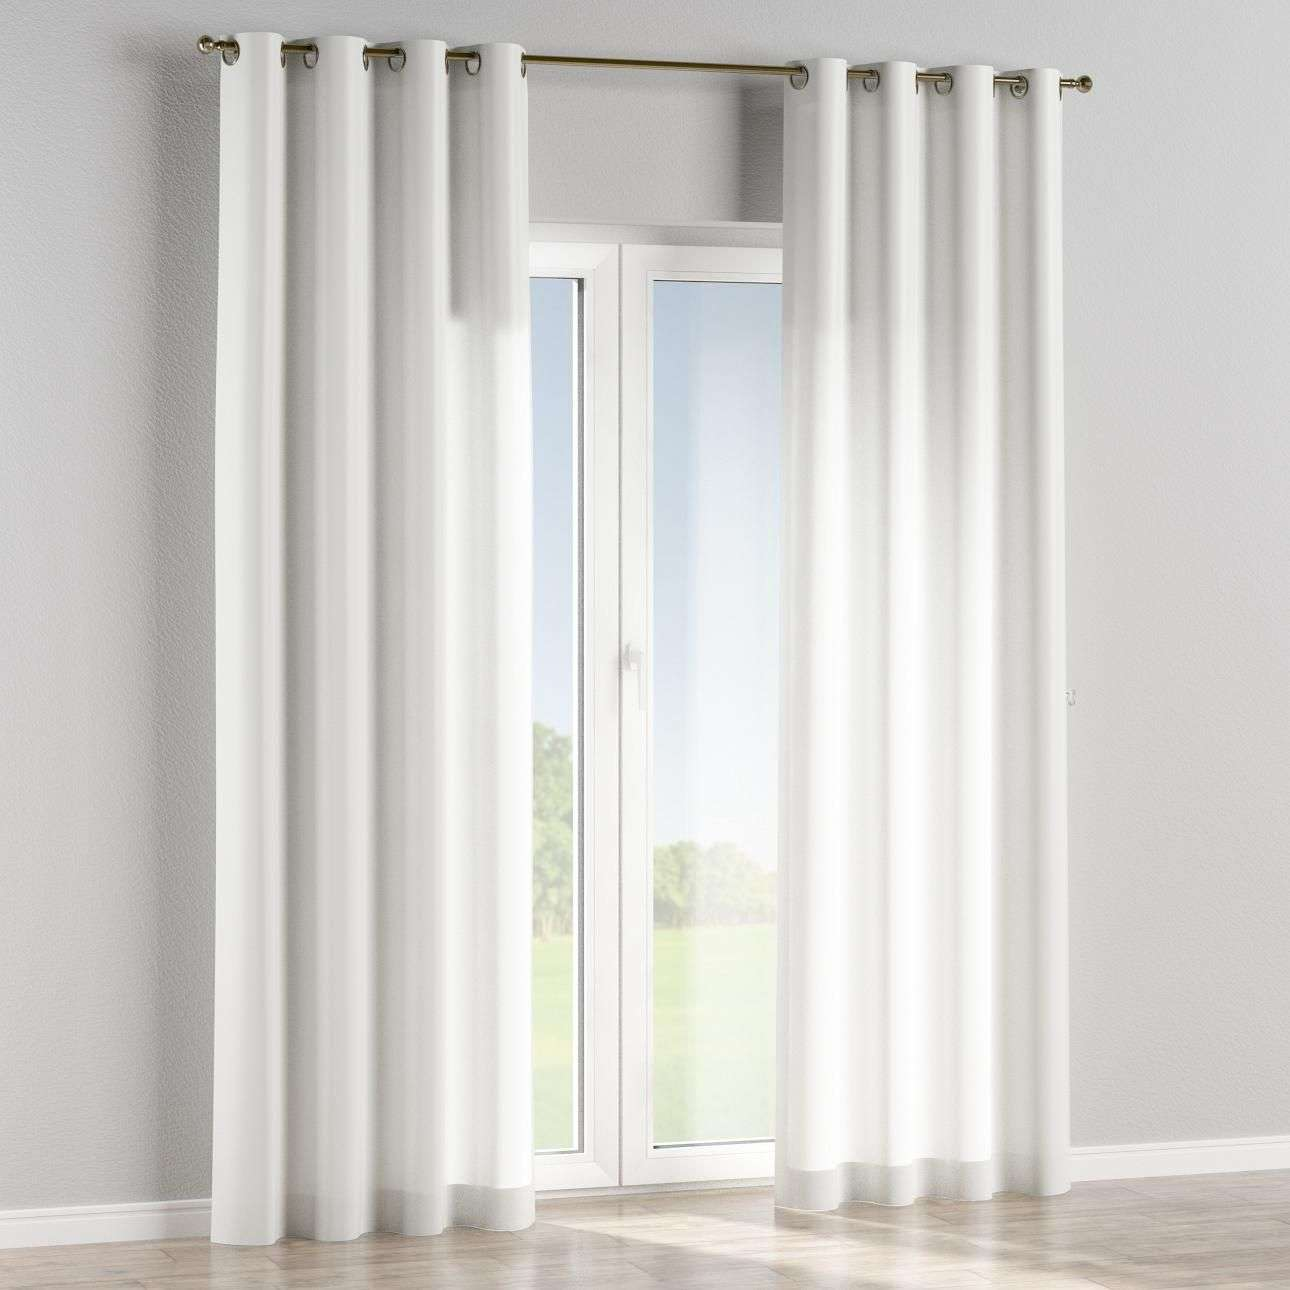 Eyelet lined curtains in collection Linen , fabric: 392-08